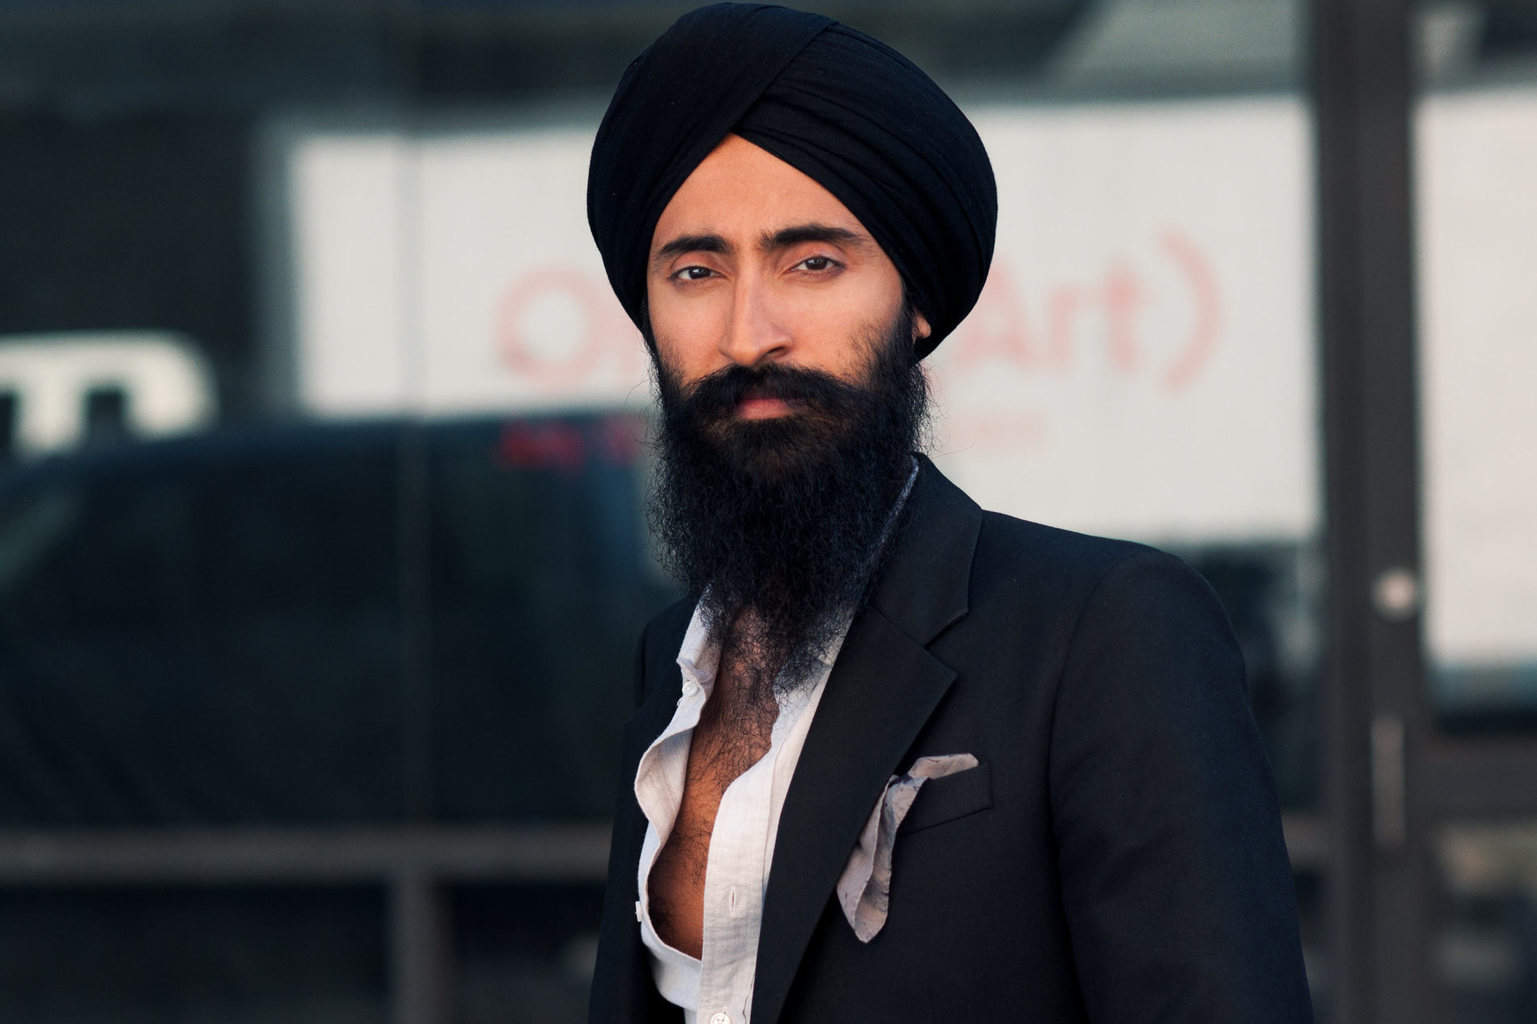 Sikh actor and designer banned from flying Aeroméxico because of Turban